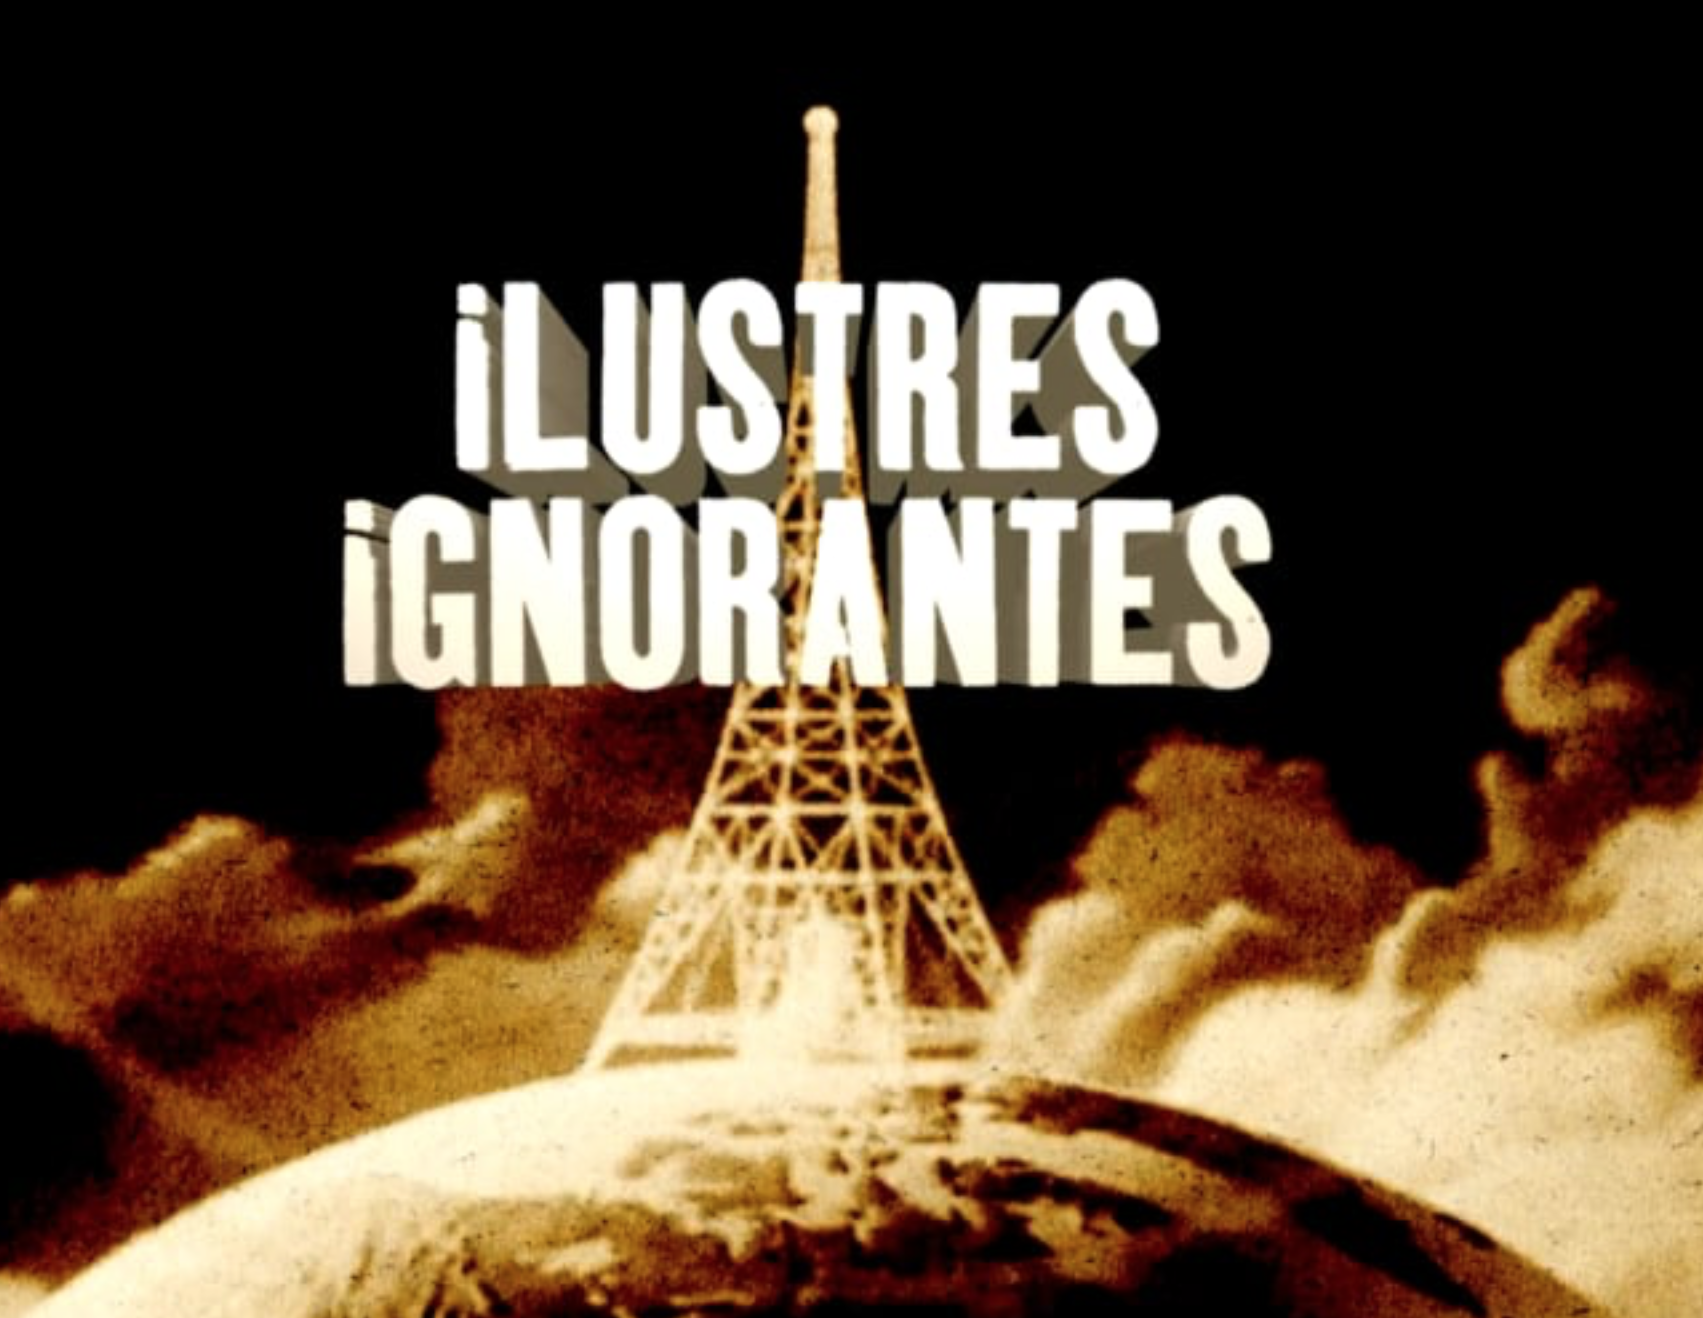 SKETCH «ILUSTRES IGNORANTES»